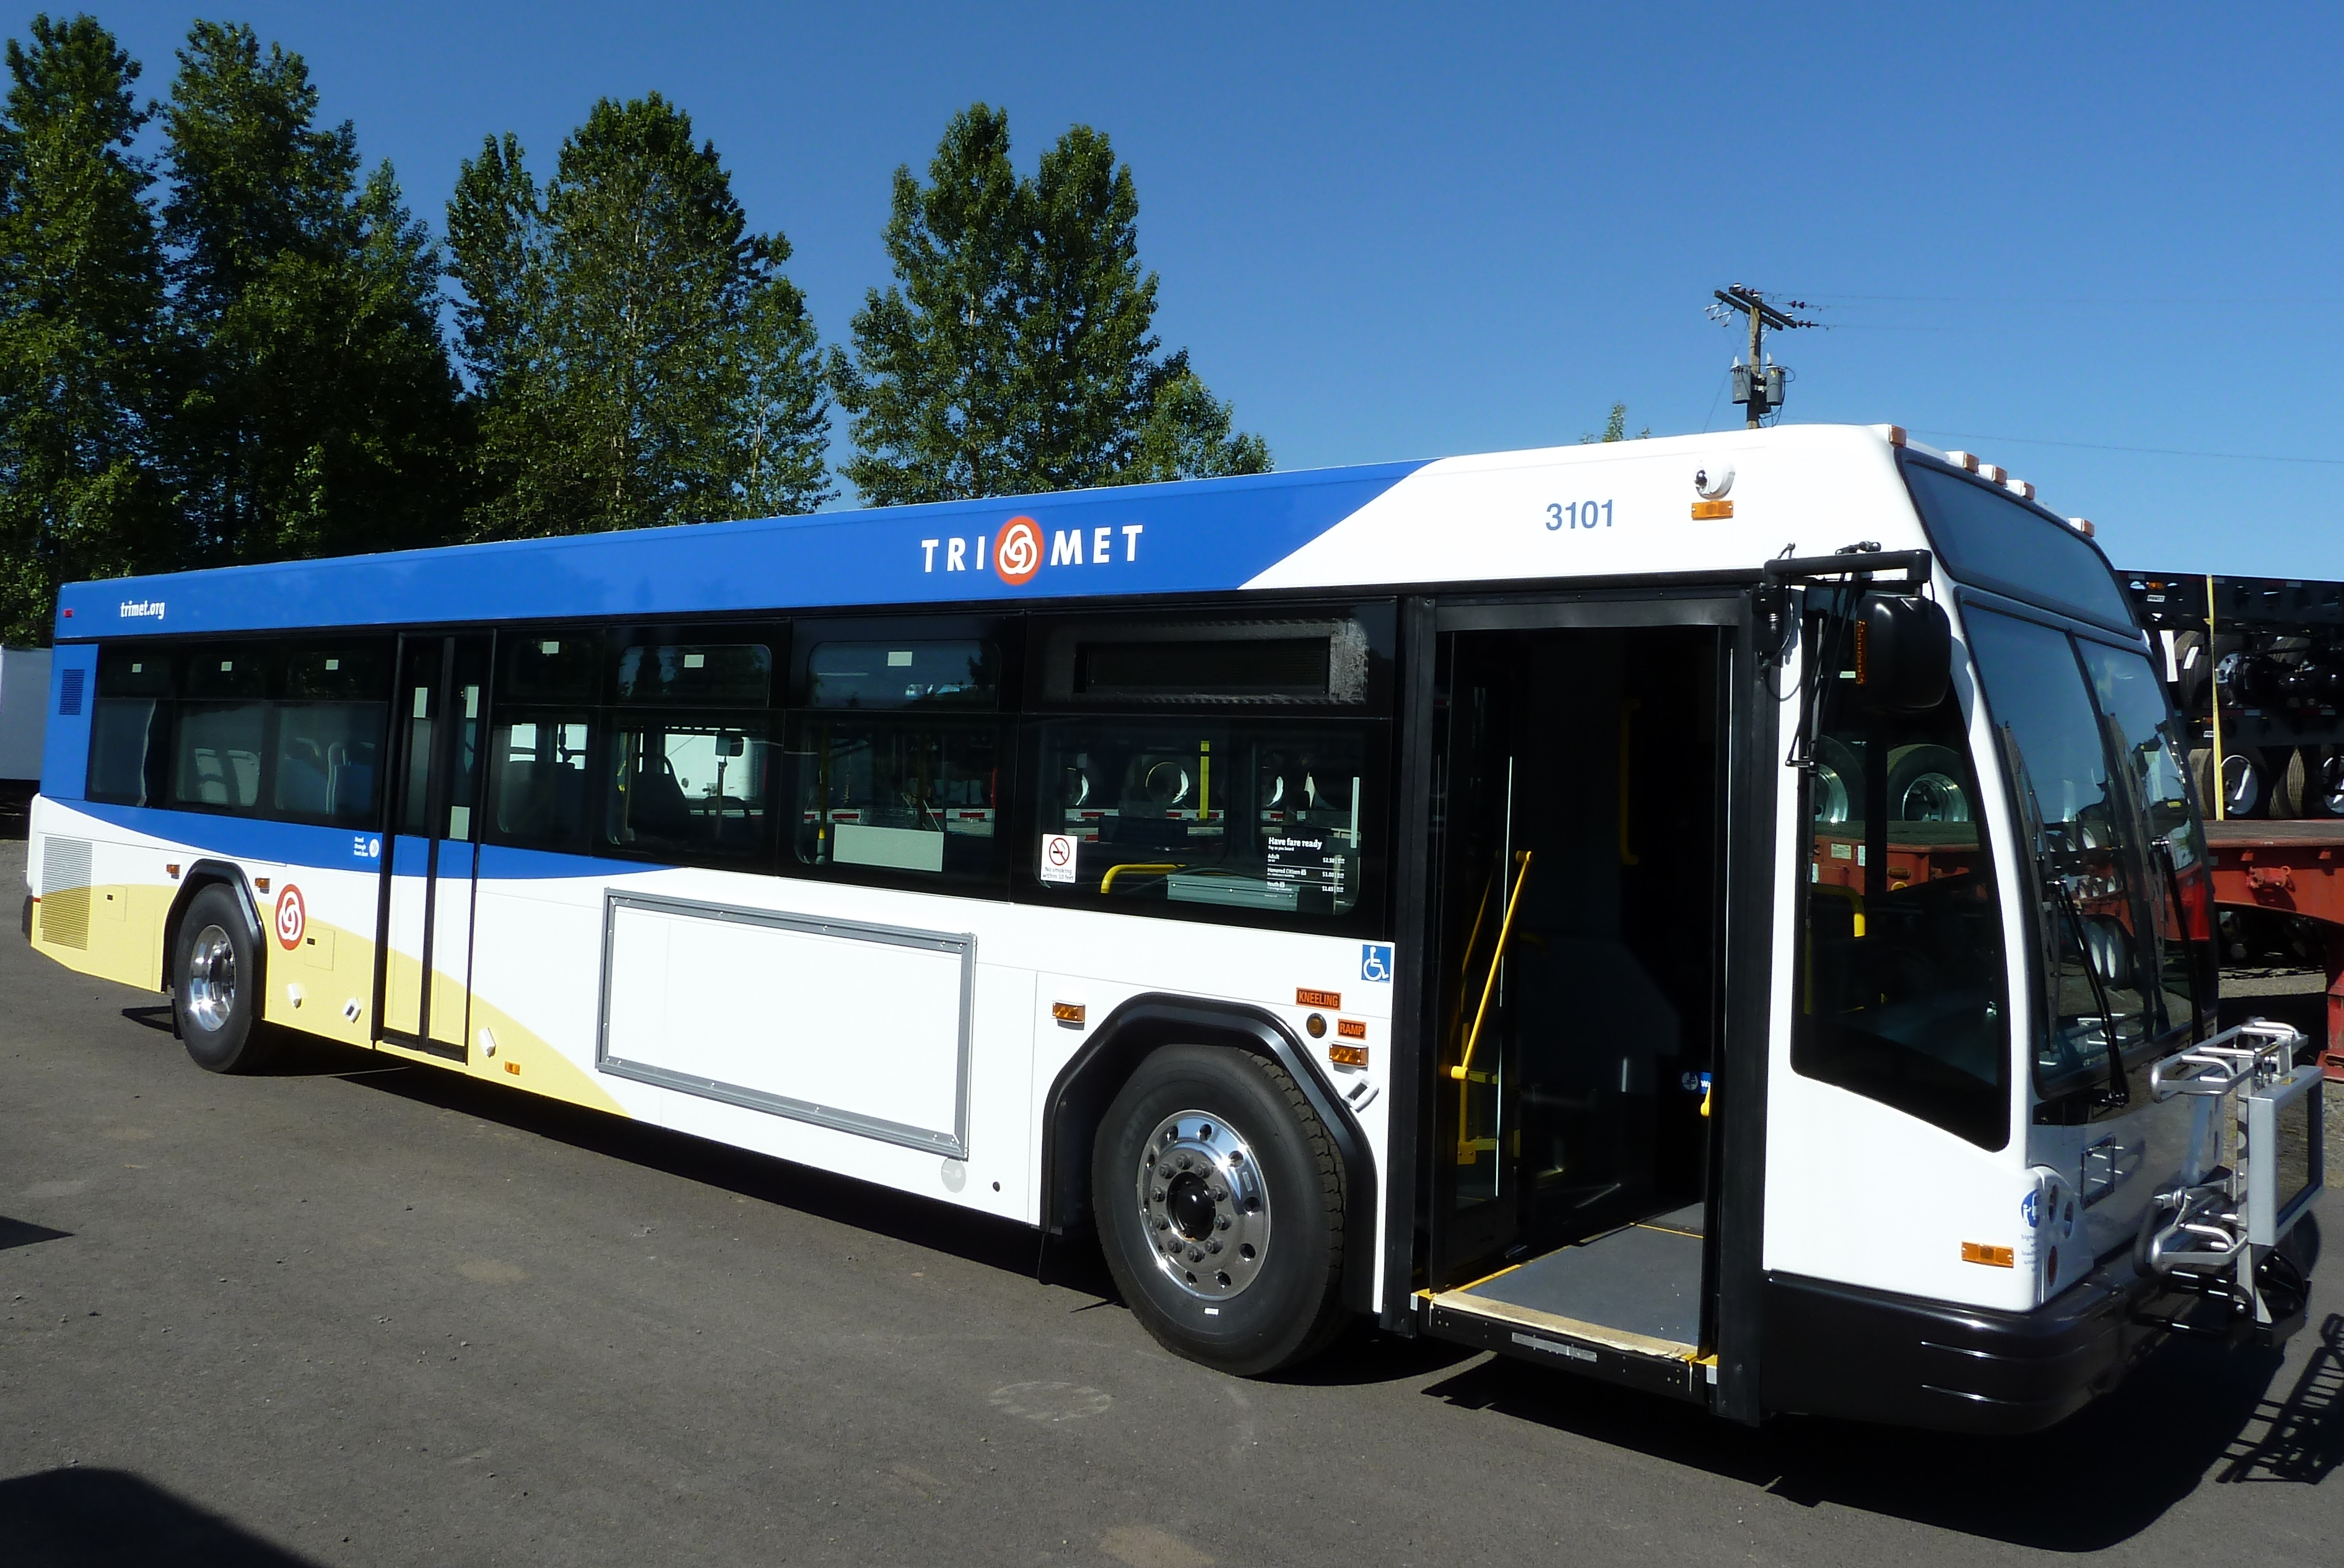 new trimet buses to begin service in less than a month | trimet news